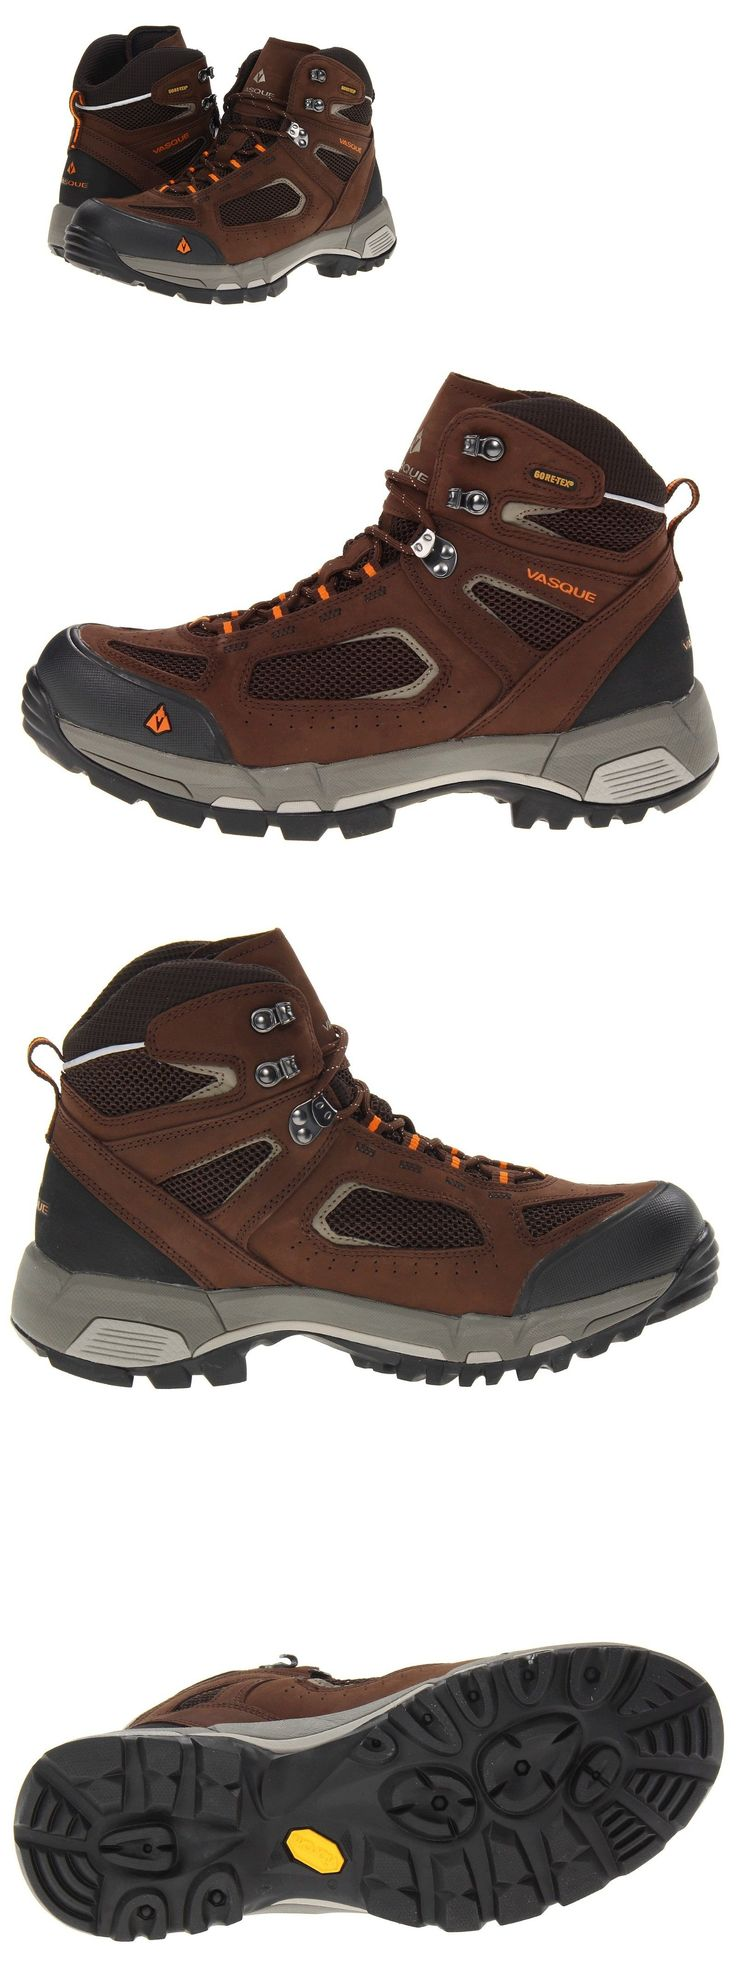 Mens 181392: 50% Off! New #7482 Mn S Vasque Breeze 2.0 Gore Tex Hiking Boots Us 9, Brown. -> BUY IT NOW ONLY: $84.99 on eBay!